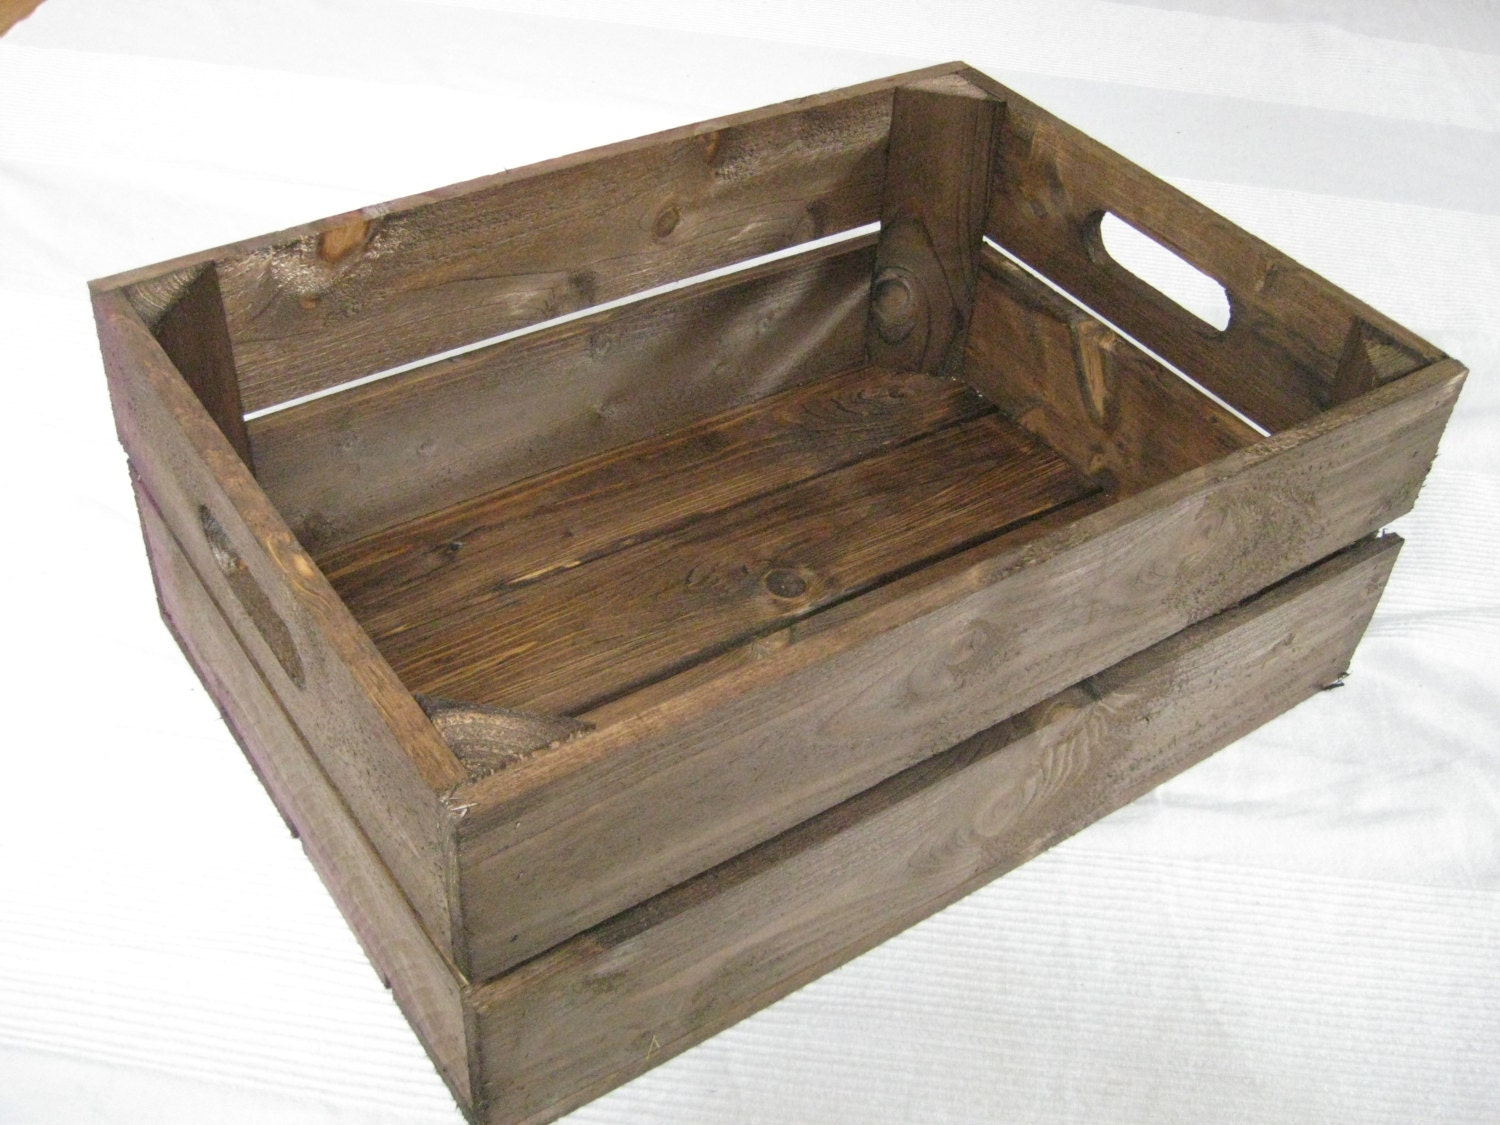 Handmade Wooden Crates. Dark Brown. FLAT SHIPPING FEES!!! Excellent Quality  Handmade